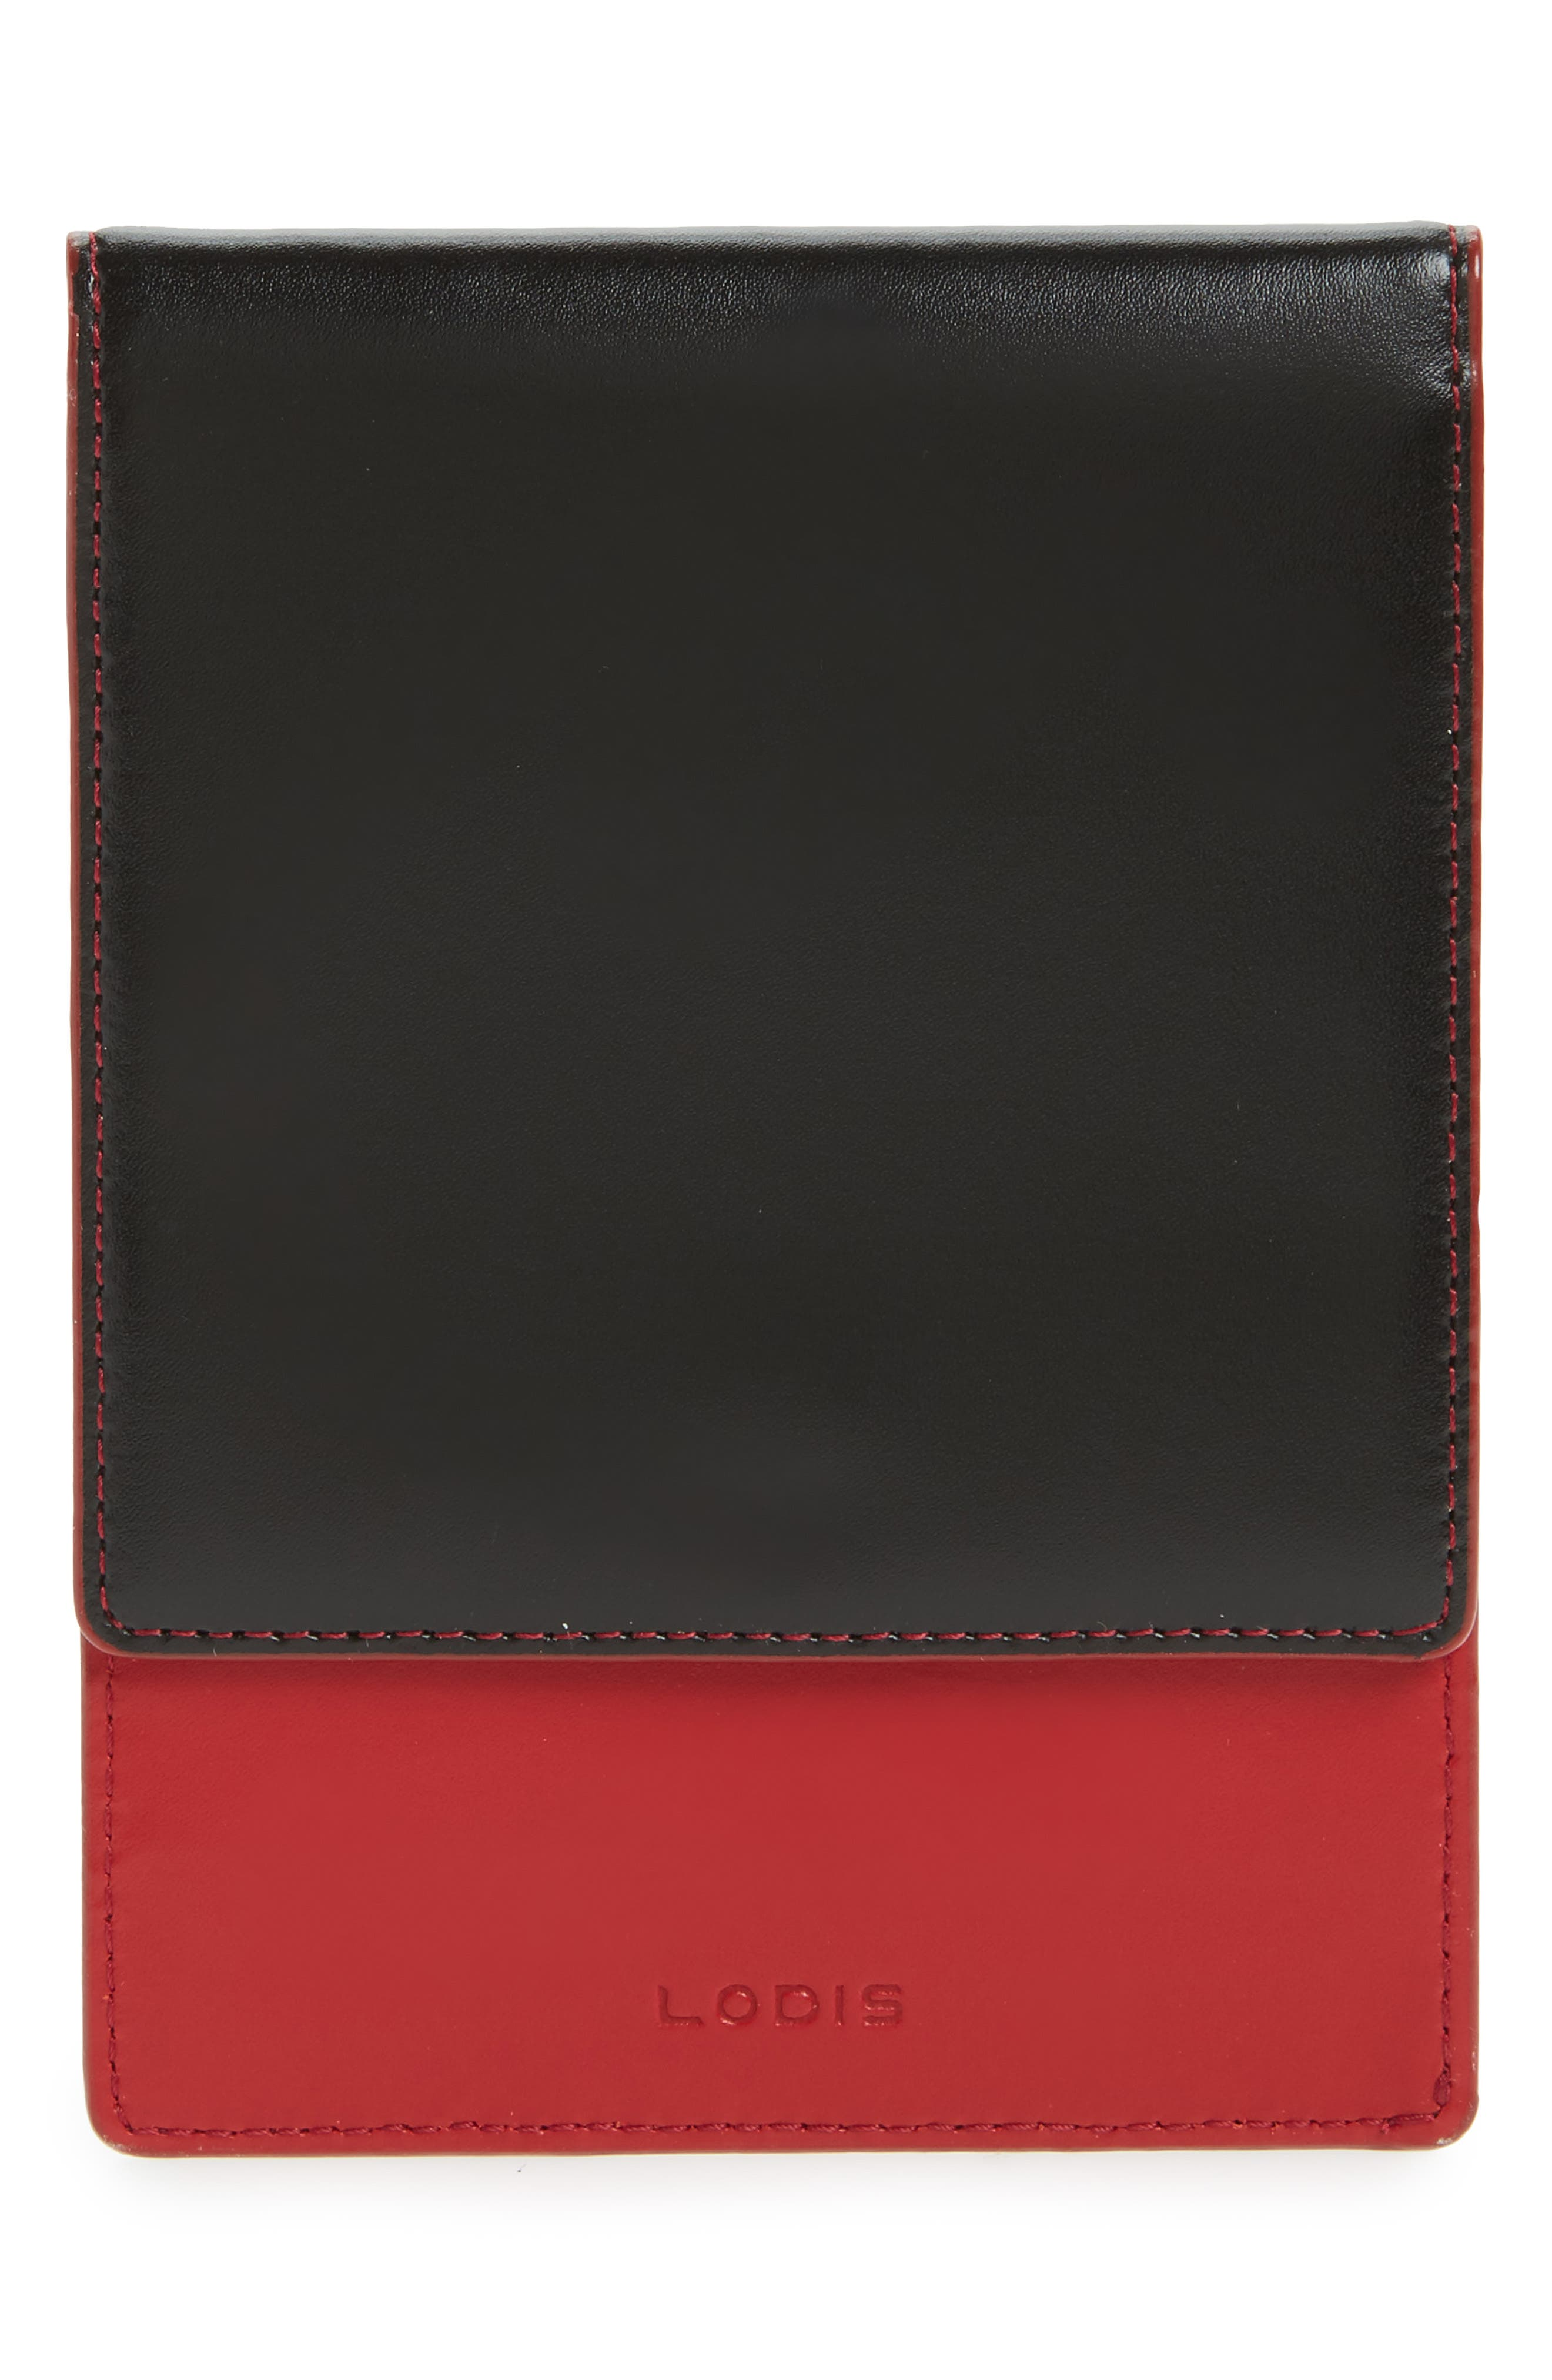 LODIS Audrey Under Lock & Key Skyler Leather Passport Wallet,                             Main thumbnail 1, color,                             001